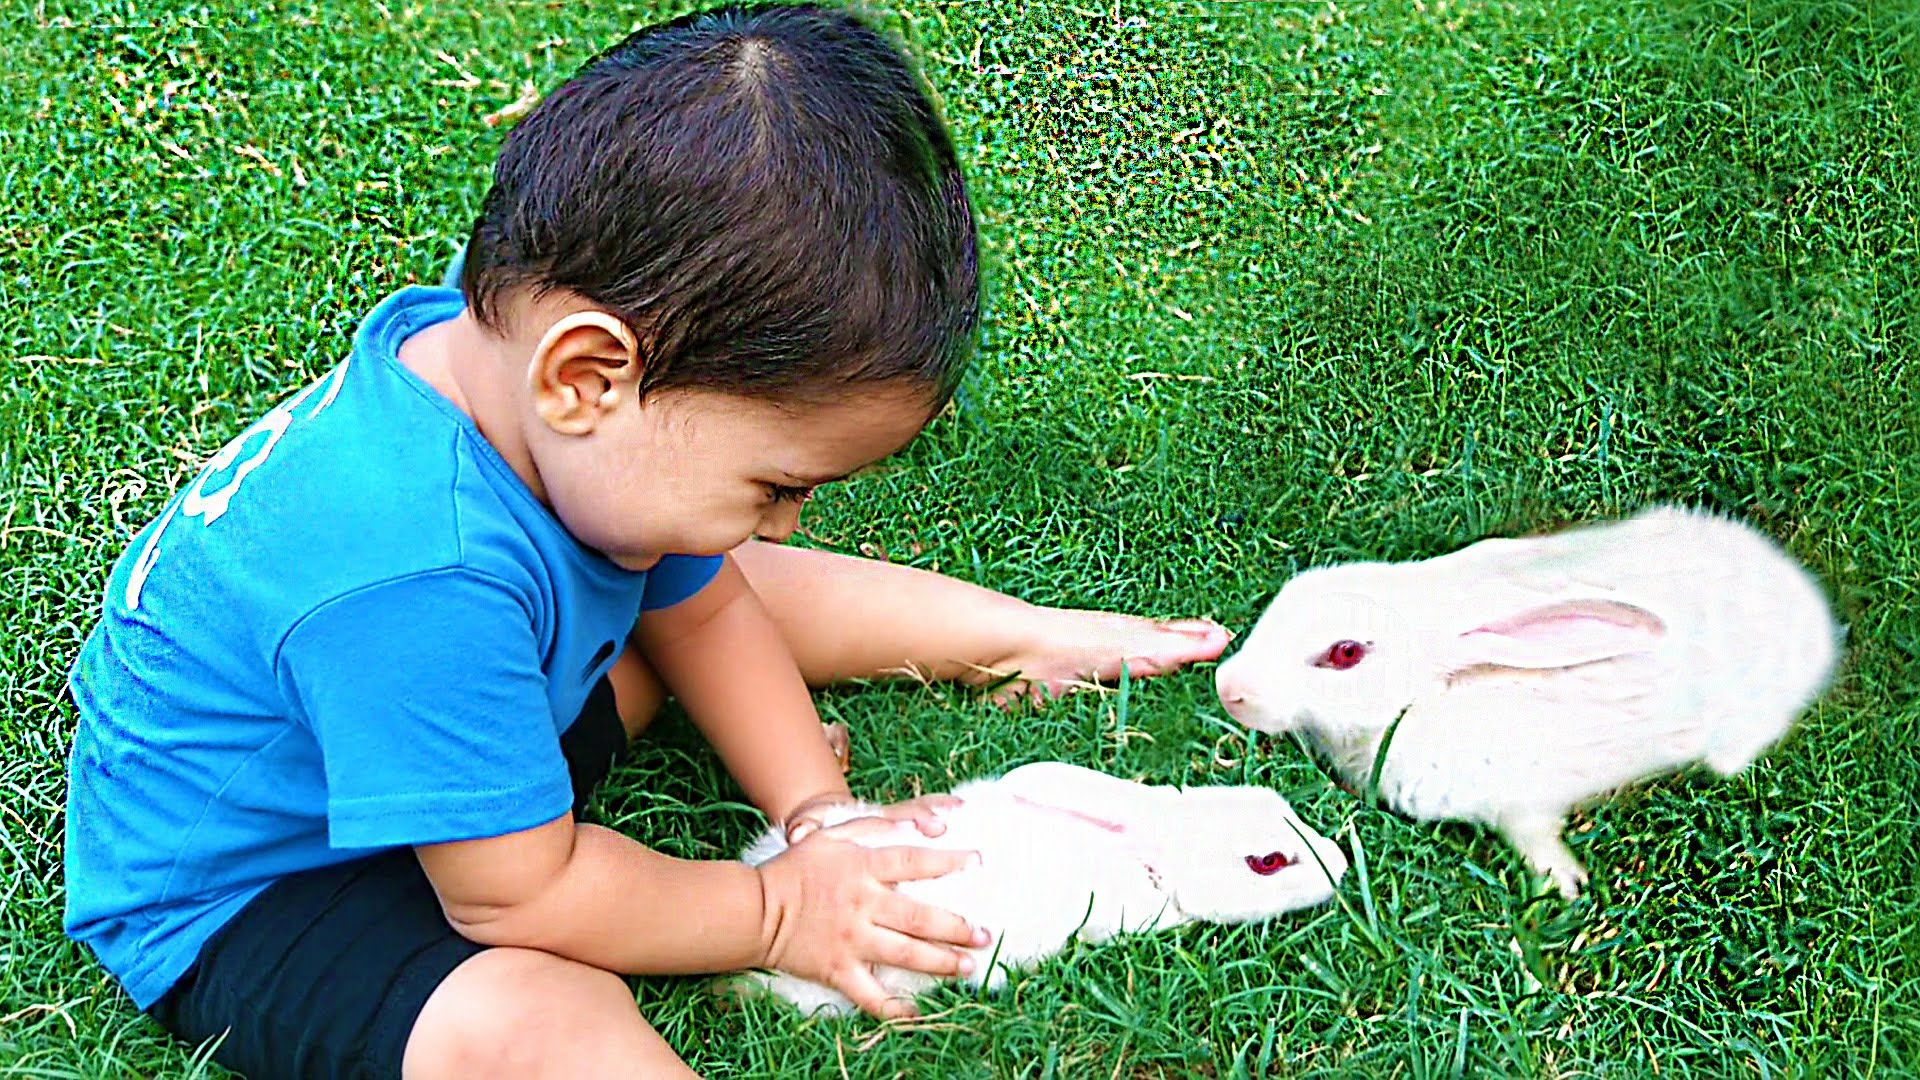 Baby Rabbits Playing With Kids Pet Rabbits For Children Pet Animals Animals For Kids Pet Rabbit Best Pets For Kids